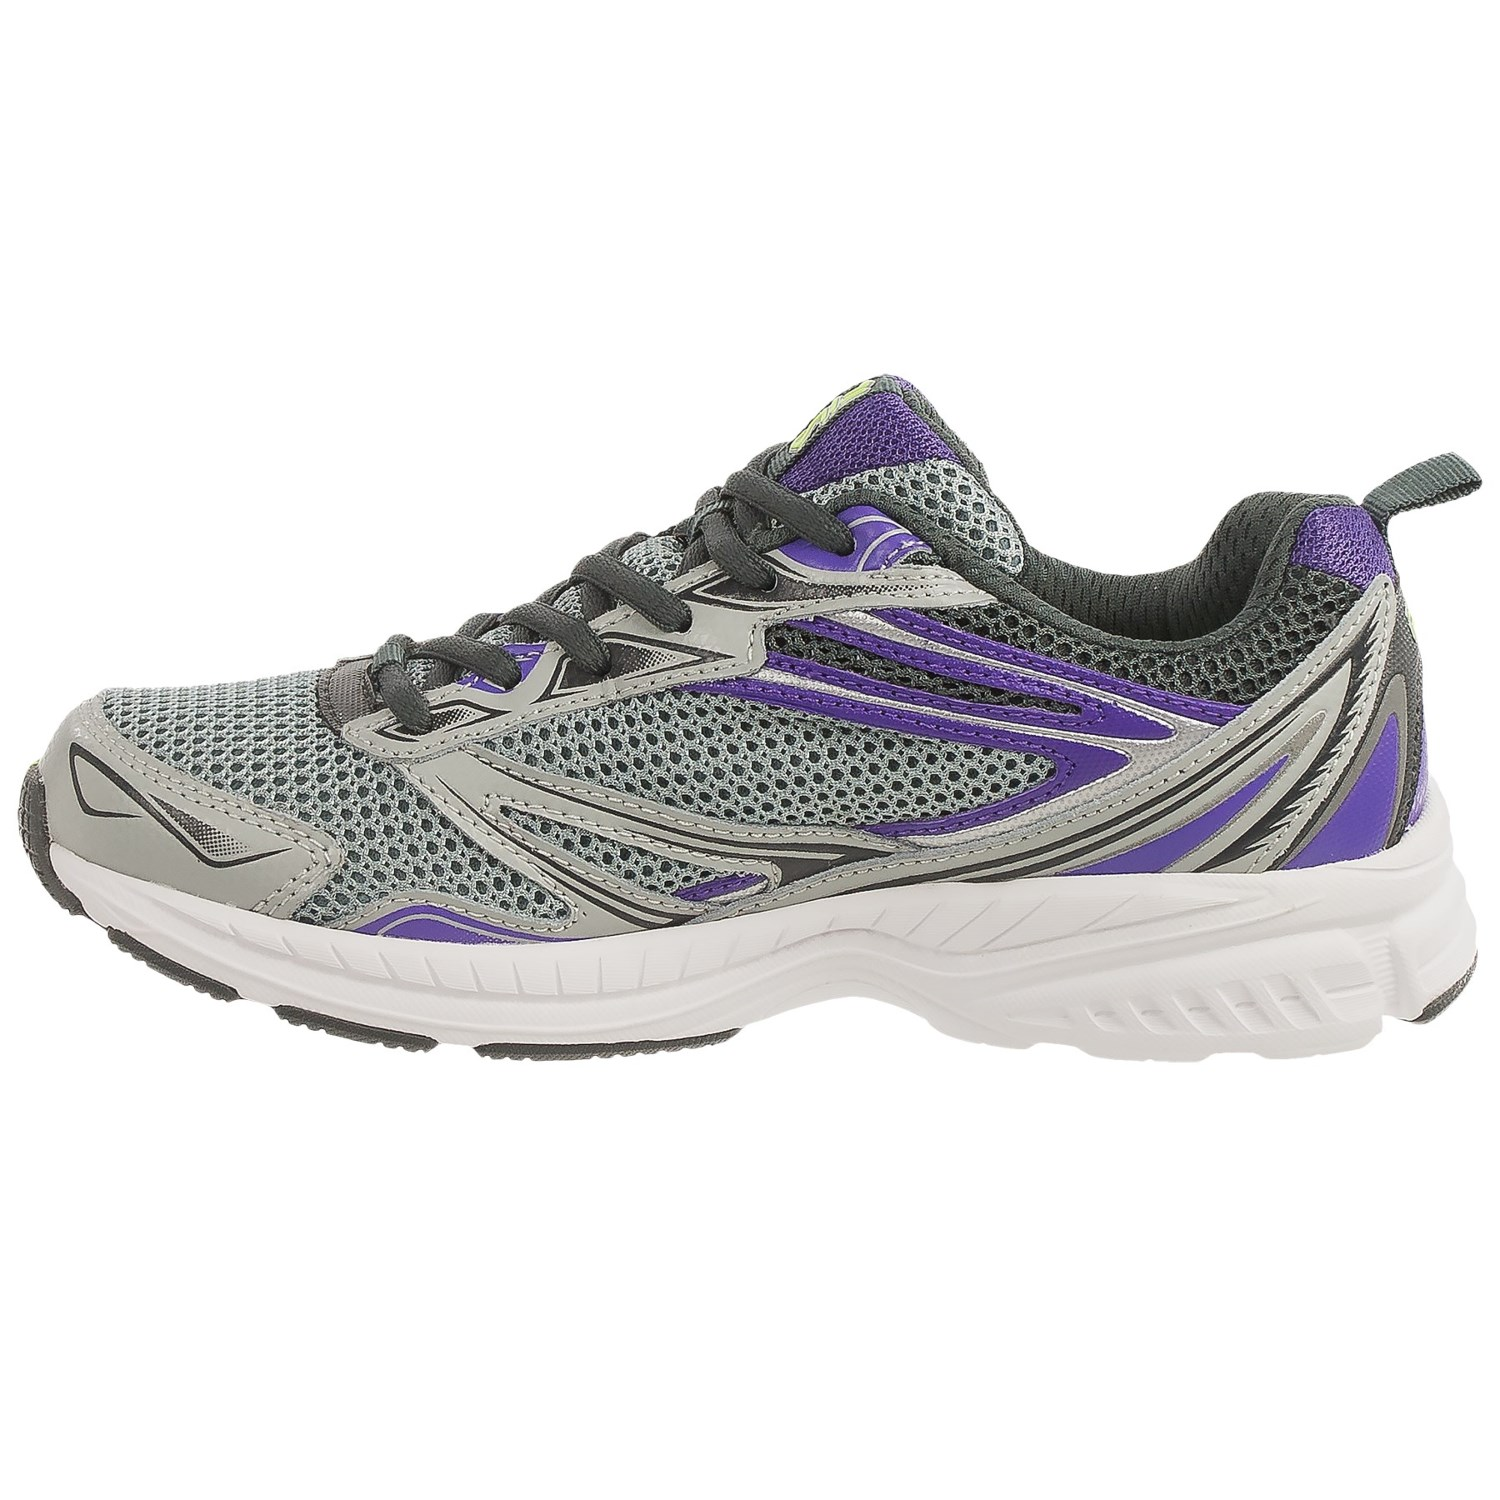 fila royalty running shoes for women save 61